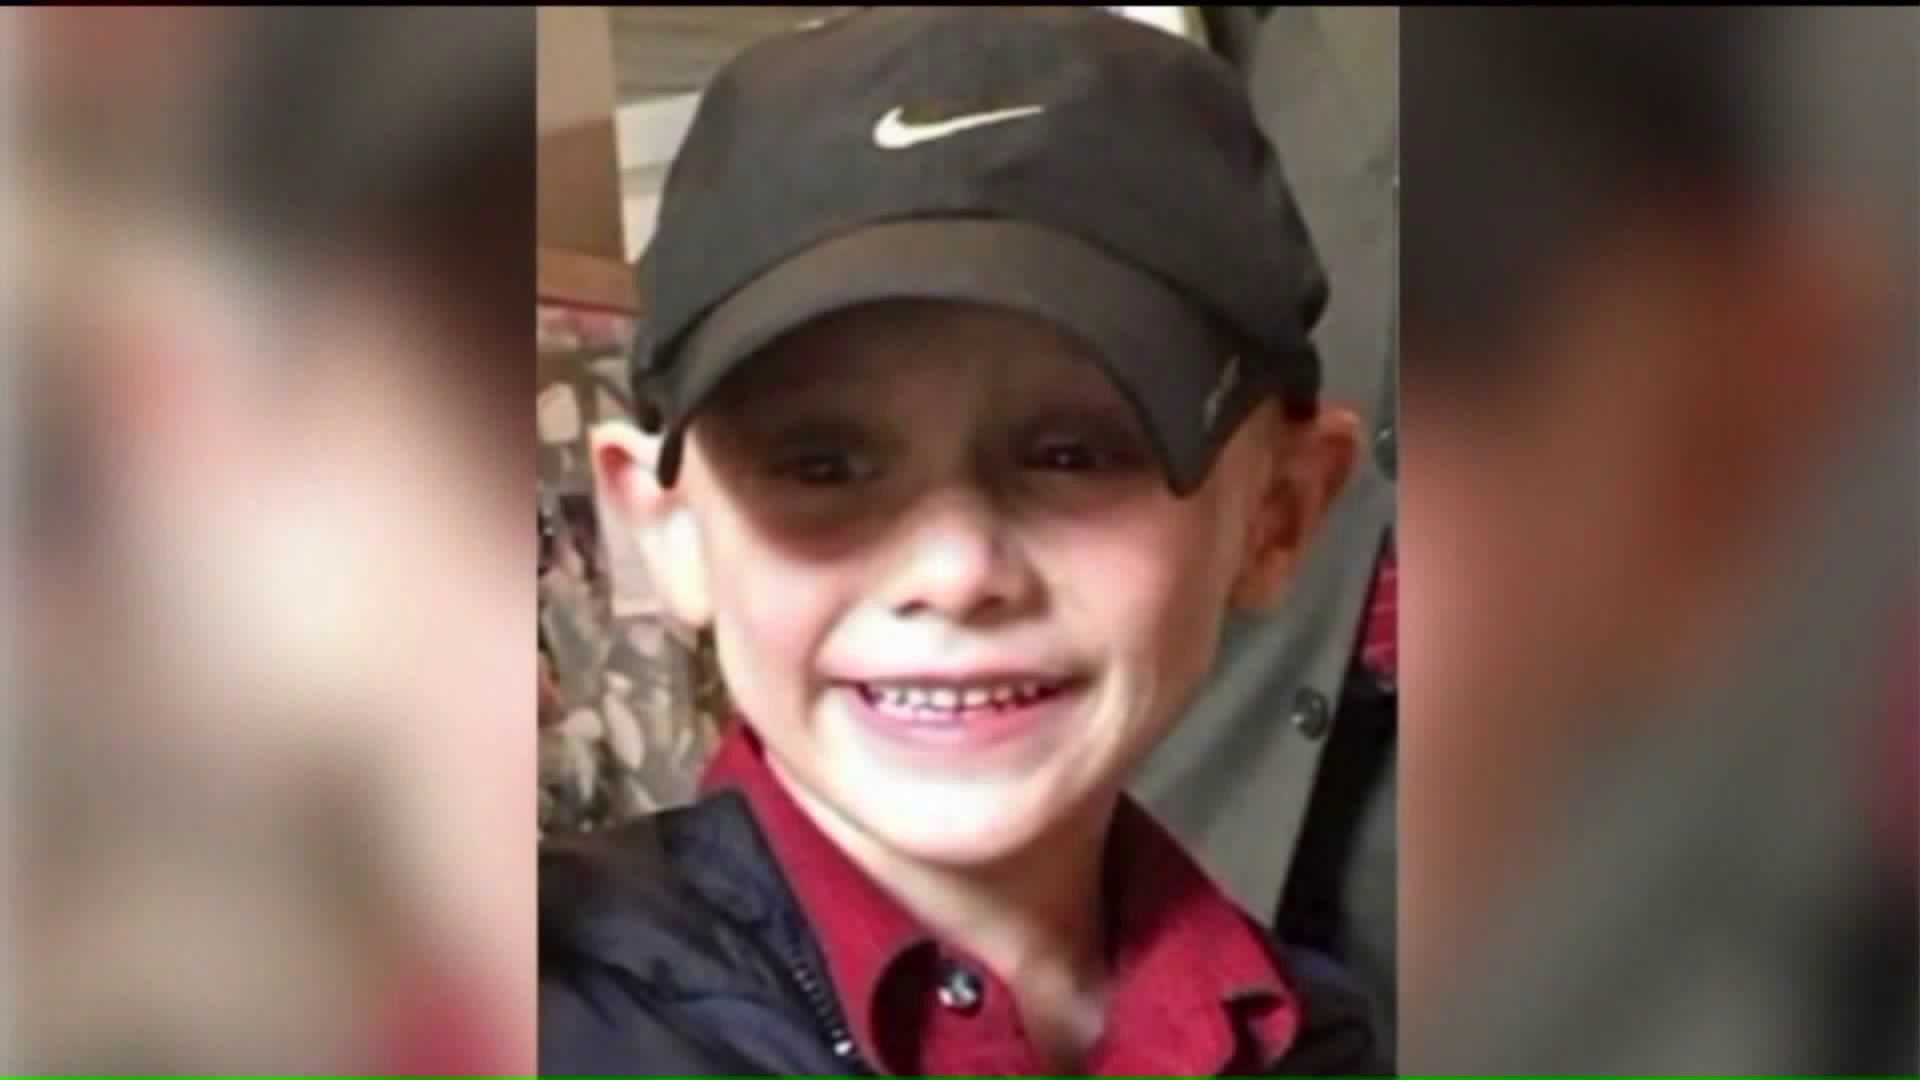 A.J. Freund disappearance: Body of missing 5-year-old boy found in Illinois, parents charged with murder